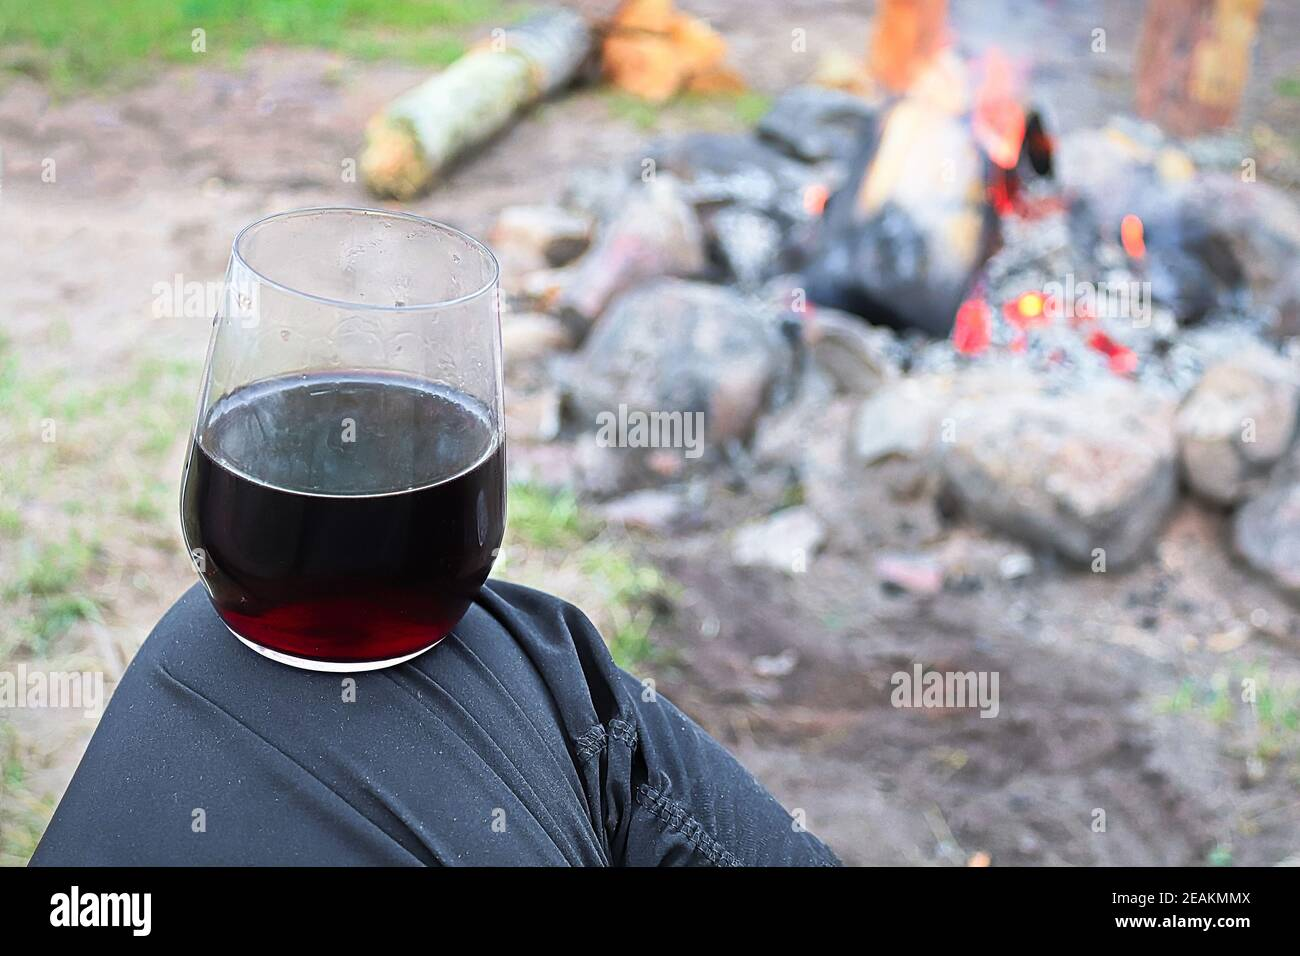 Balancing a glass of wine on a knee against a campfire Stock Photo